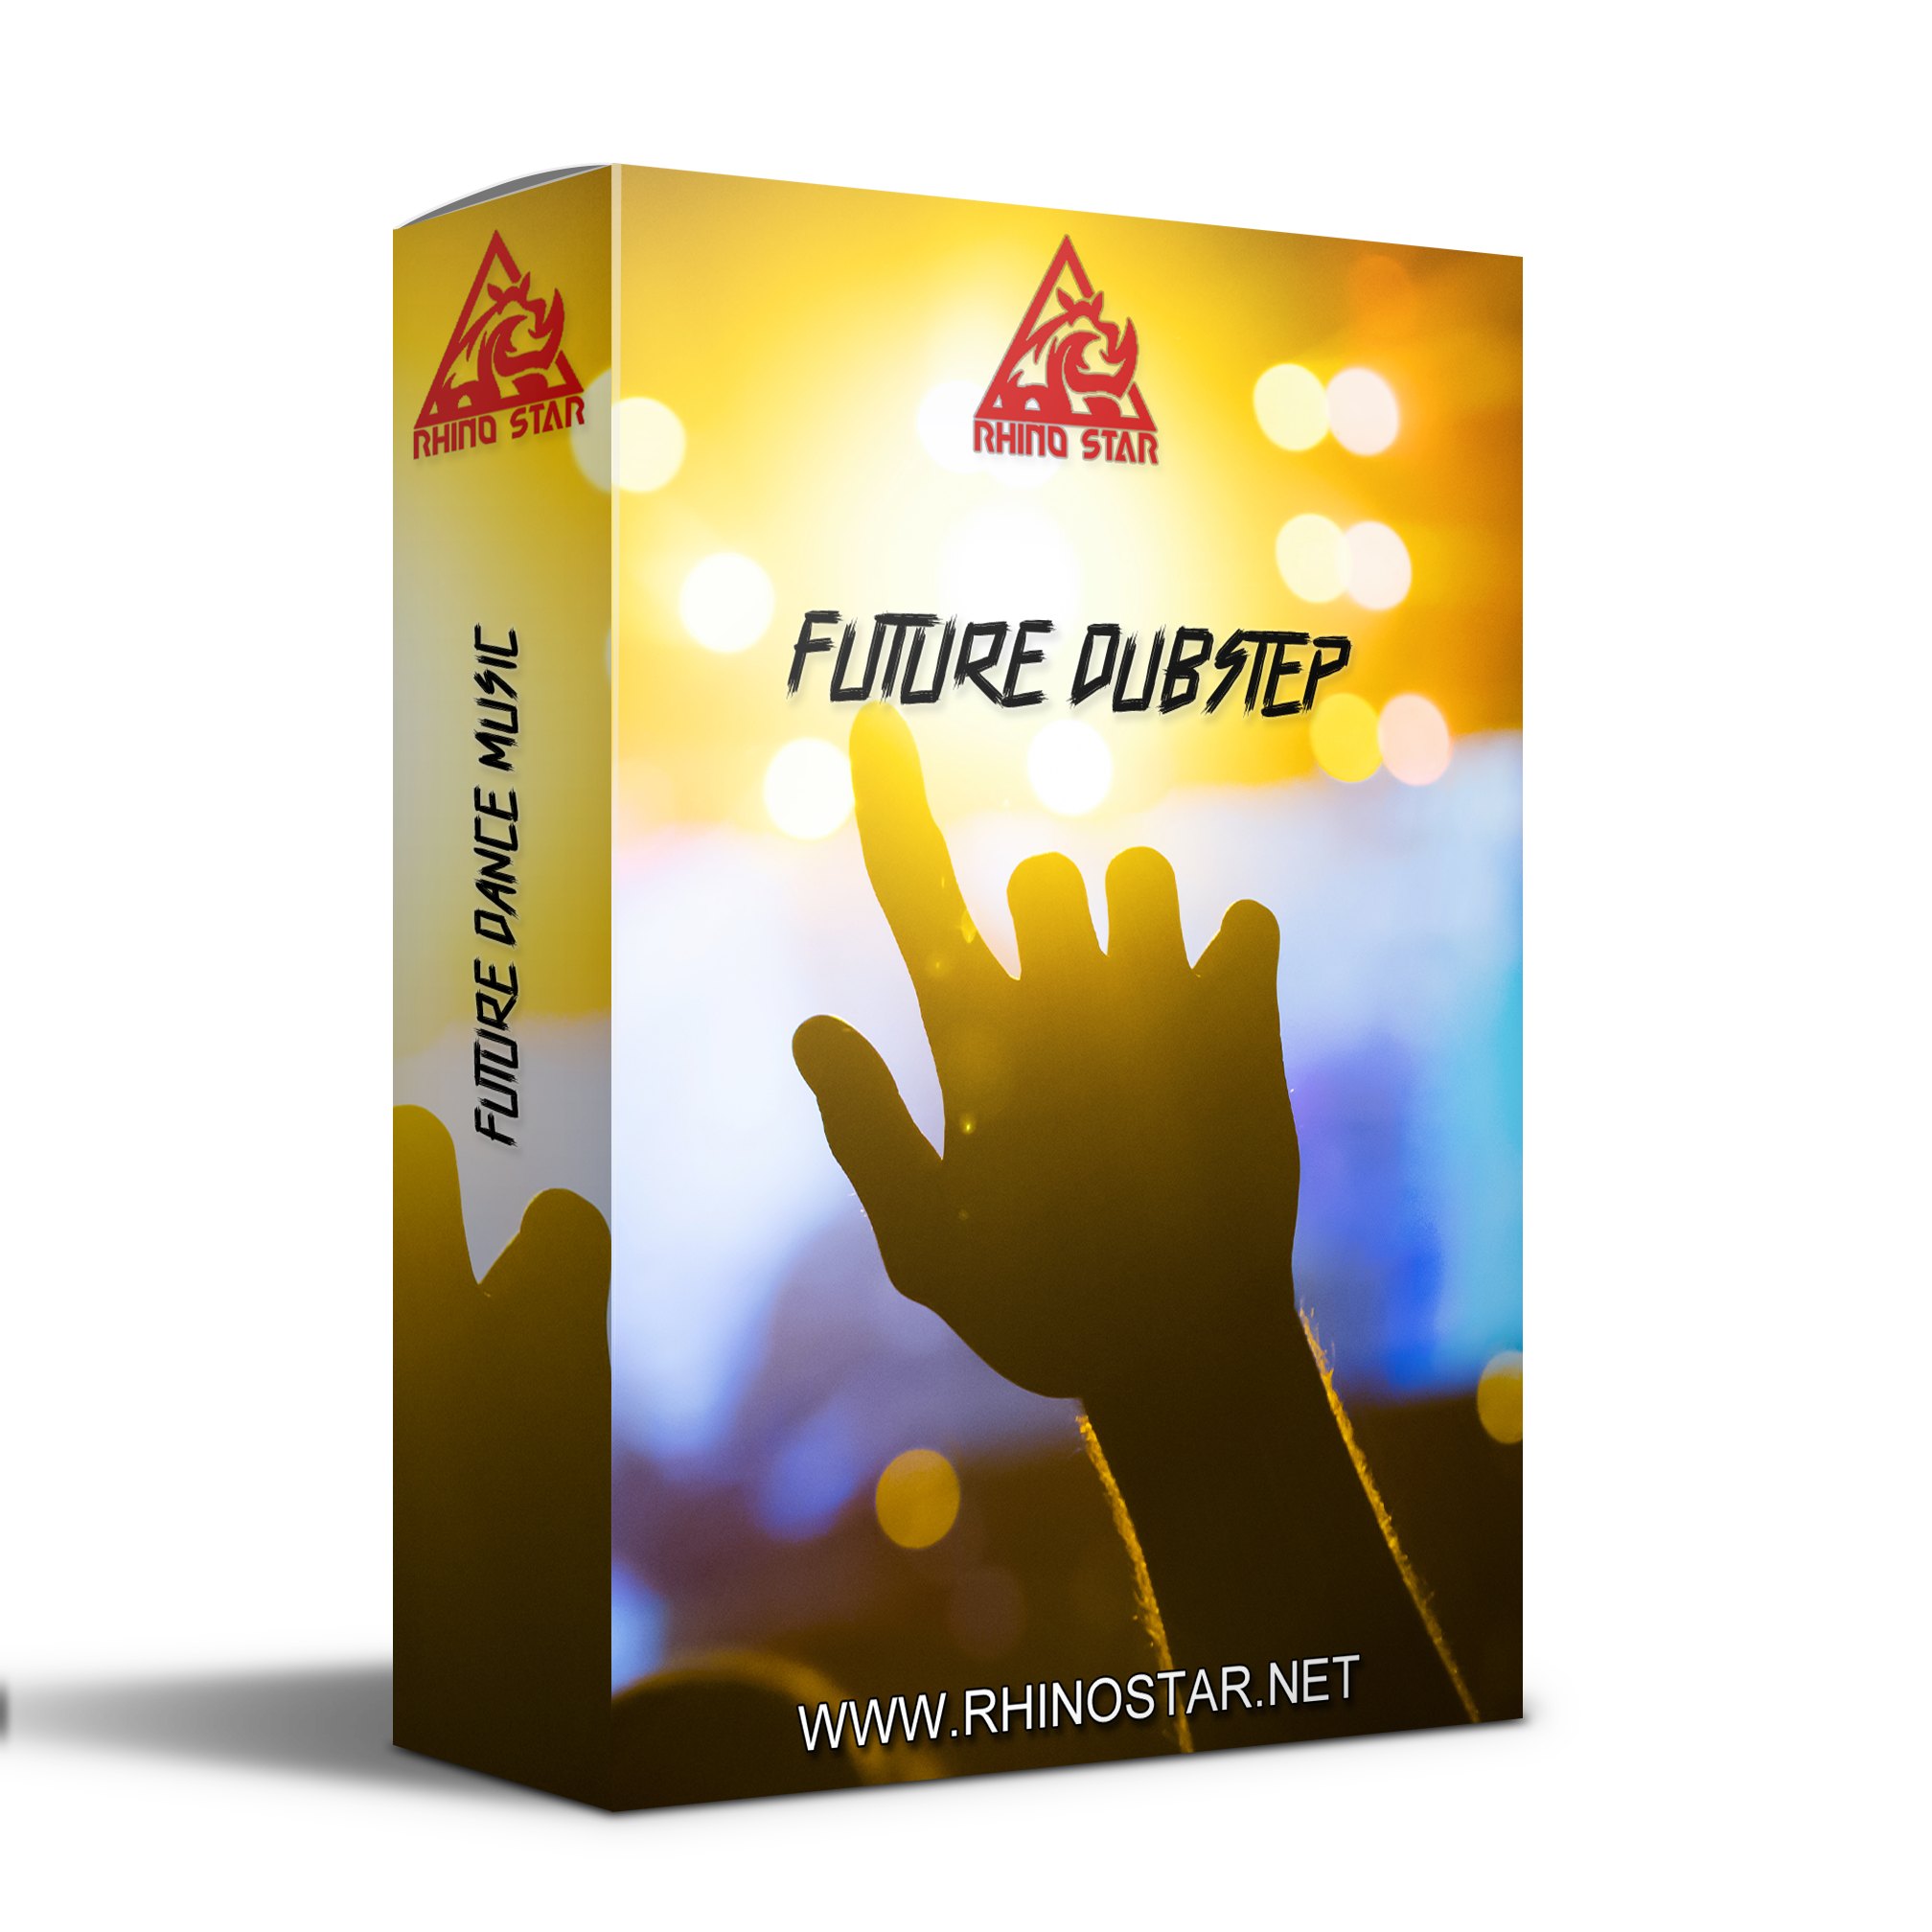 future dubstep sample pack contains 5 dubstep construction kits including wav loops, midi files and one shots of drums and synths.